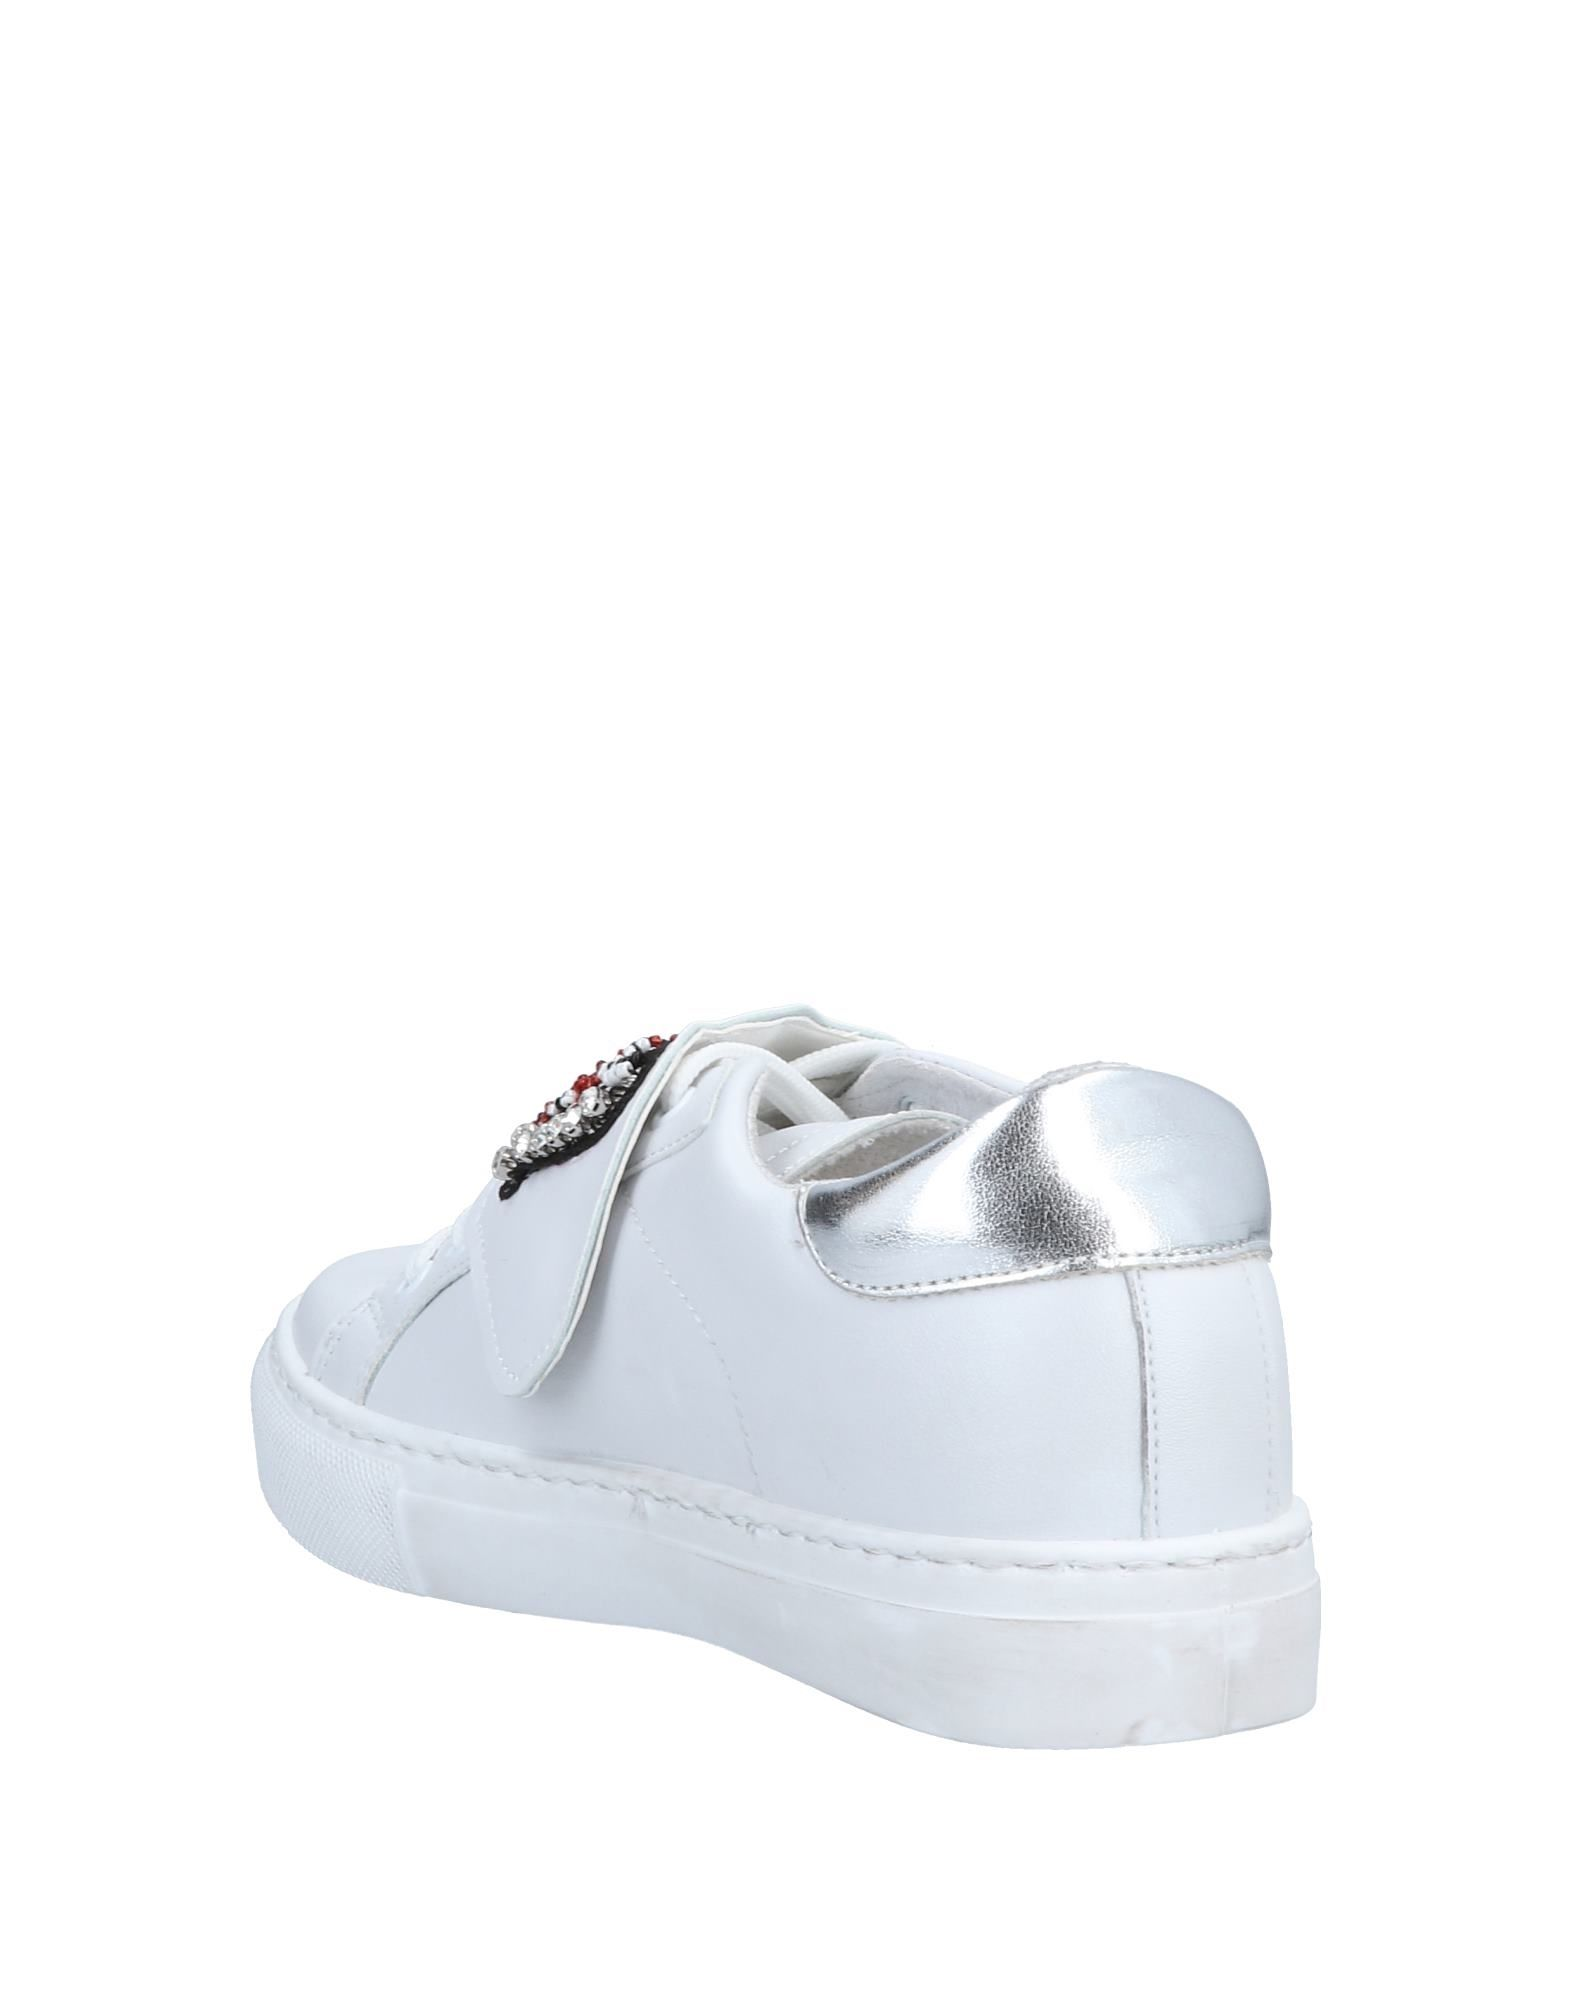 Ovye' By Cristina Lucchi Sneakers - Women Ovye' By Cristina Cristina Cristina Lucchi Sneakers online on  United Kingdom - 11564850KS 64d050